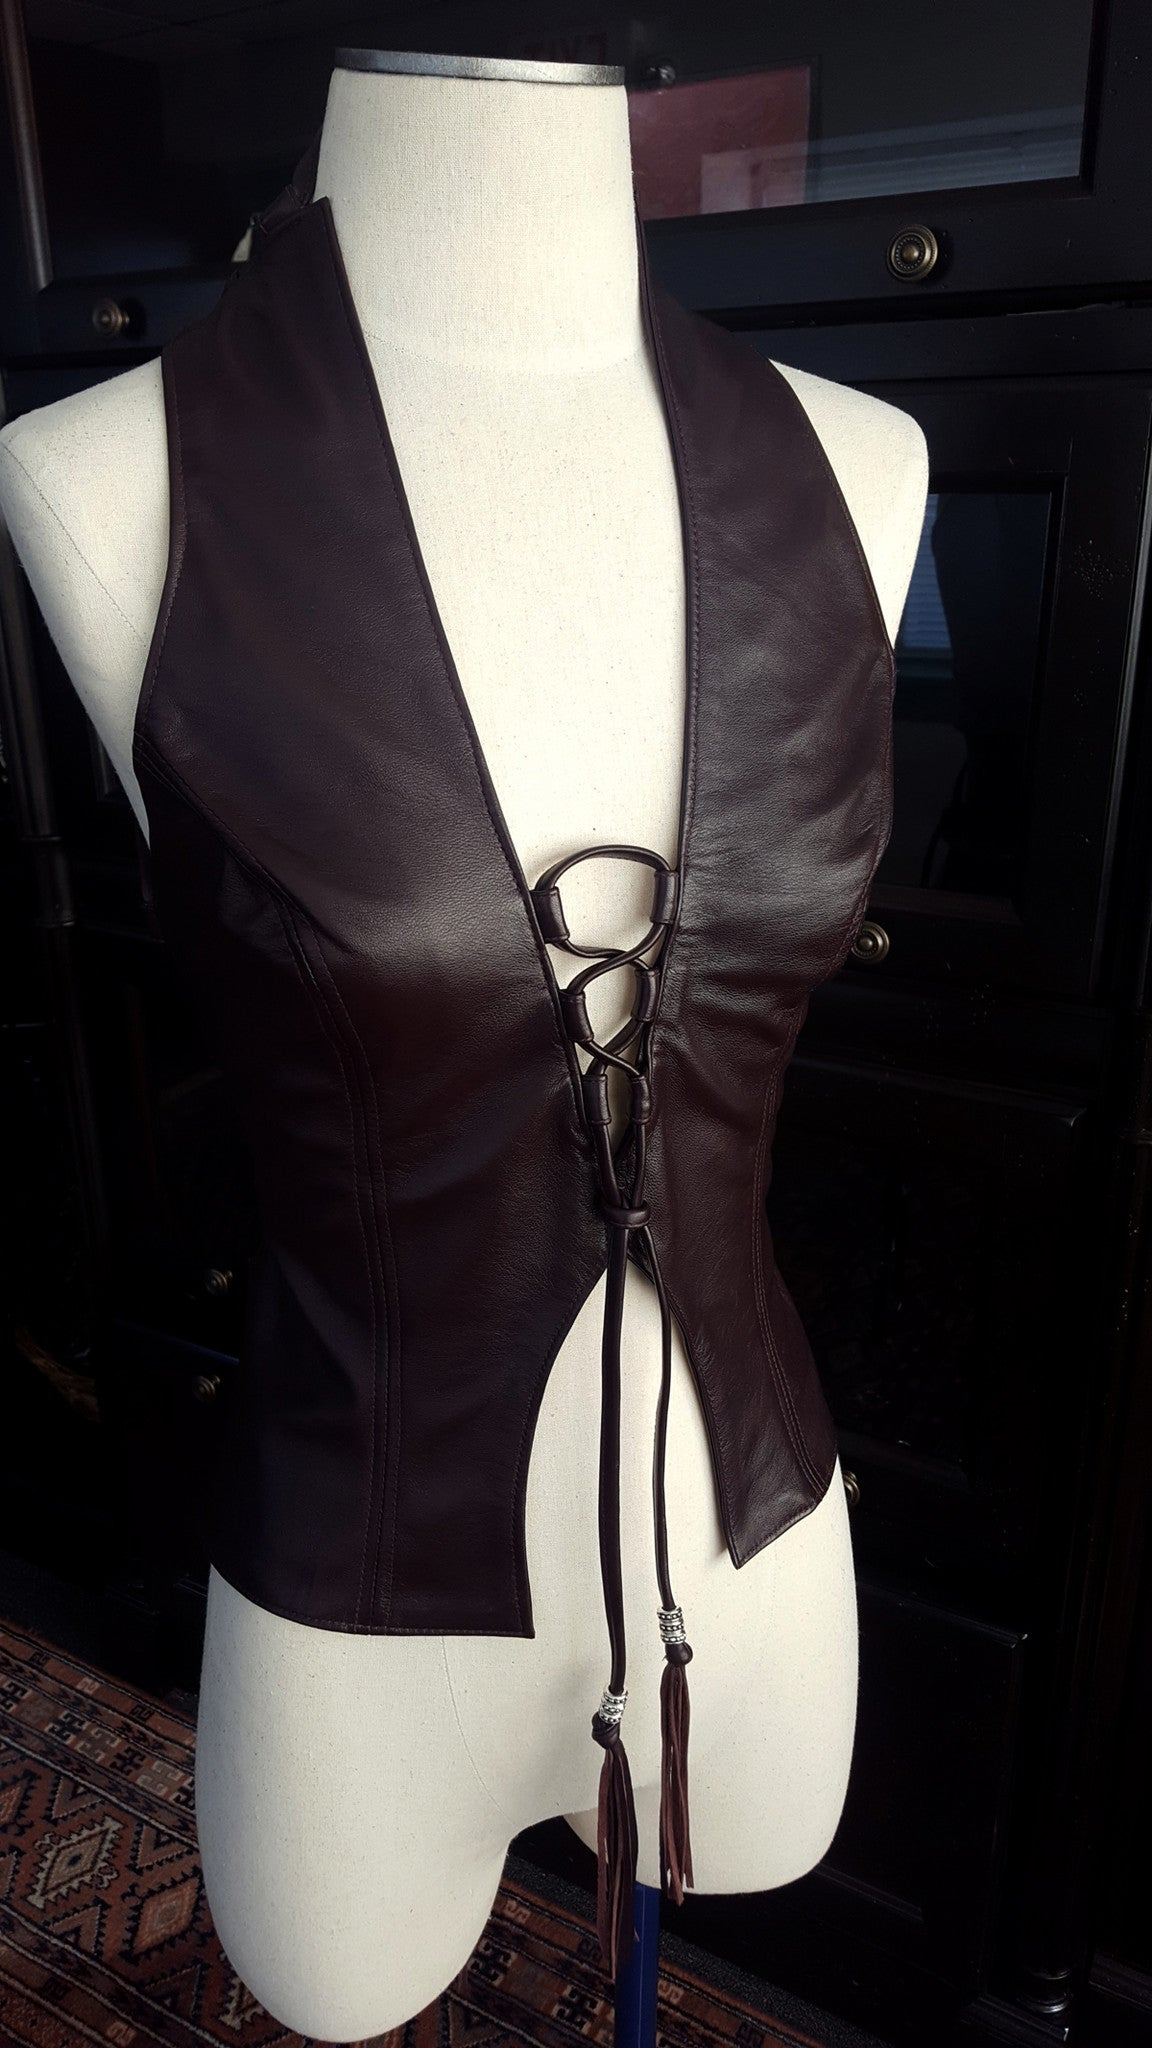 The Heaven Lambskin Leather Halter Top in beautiful and luxurious Eggplant lambskin.